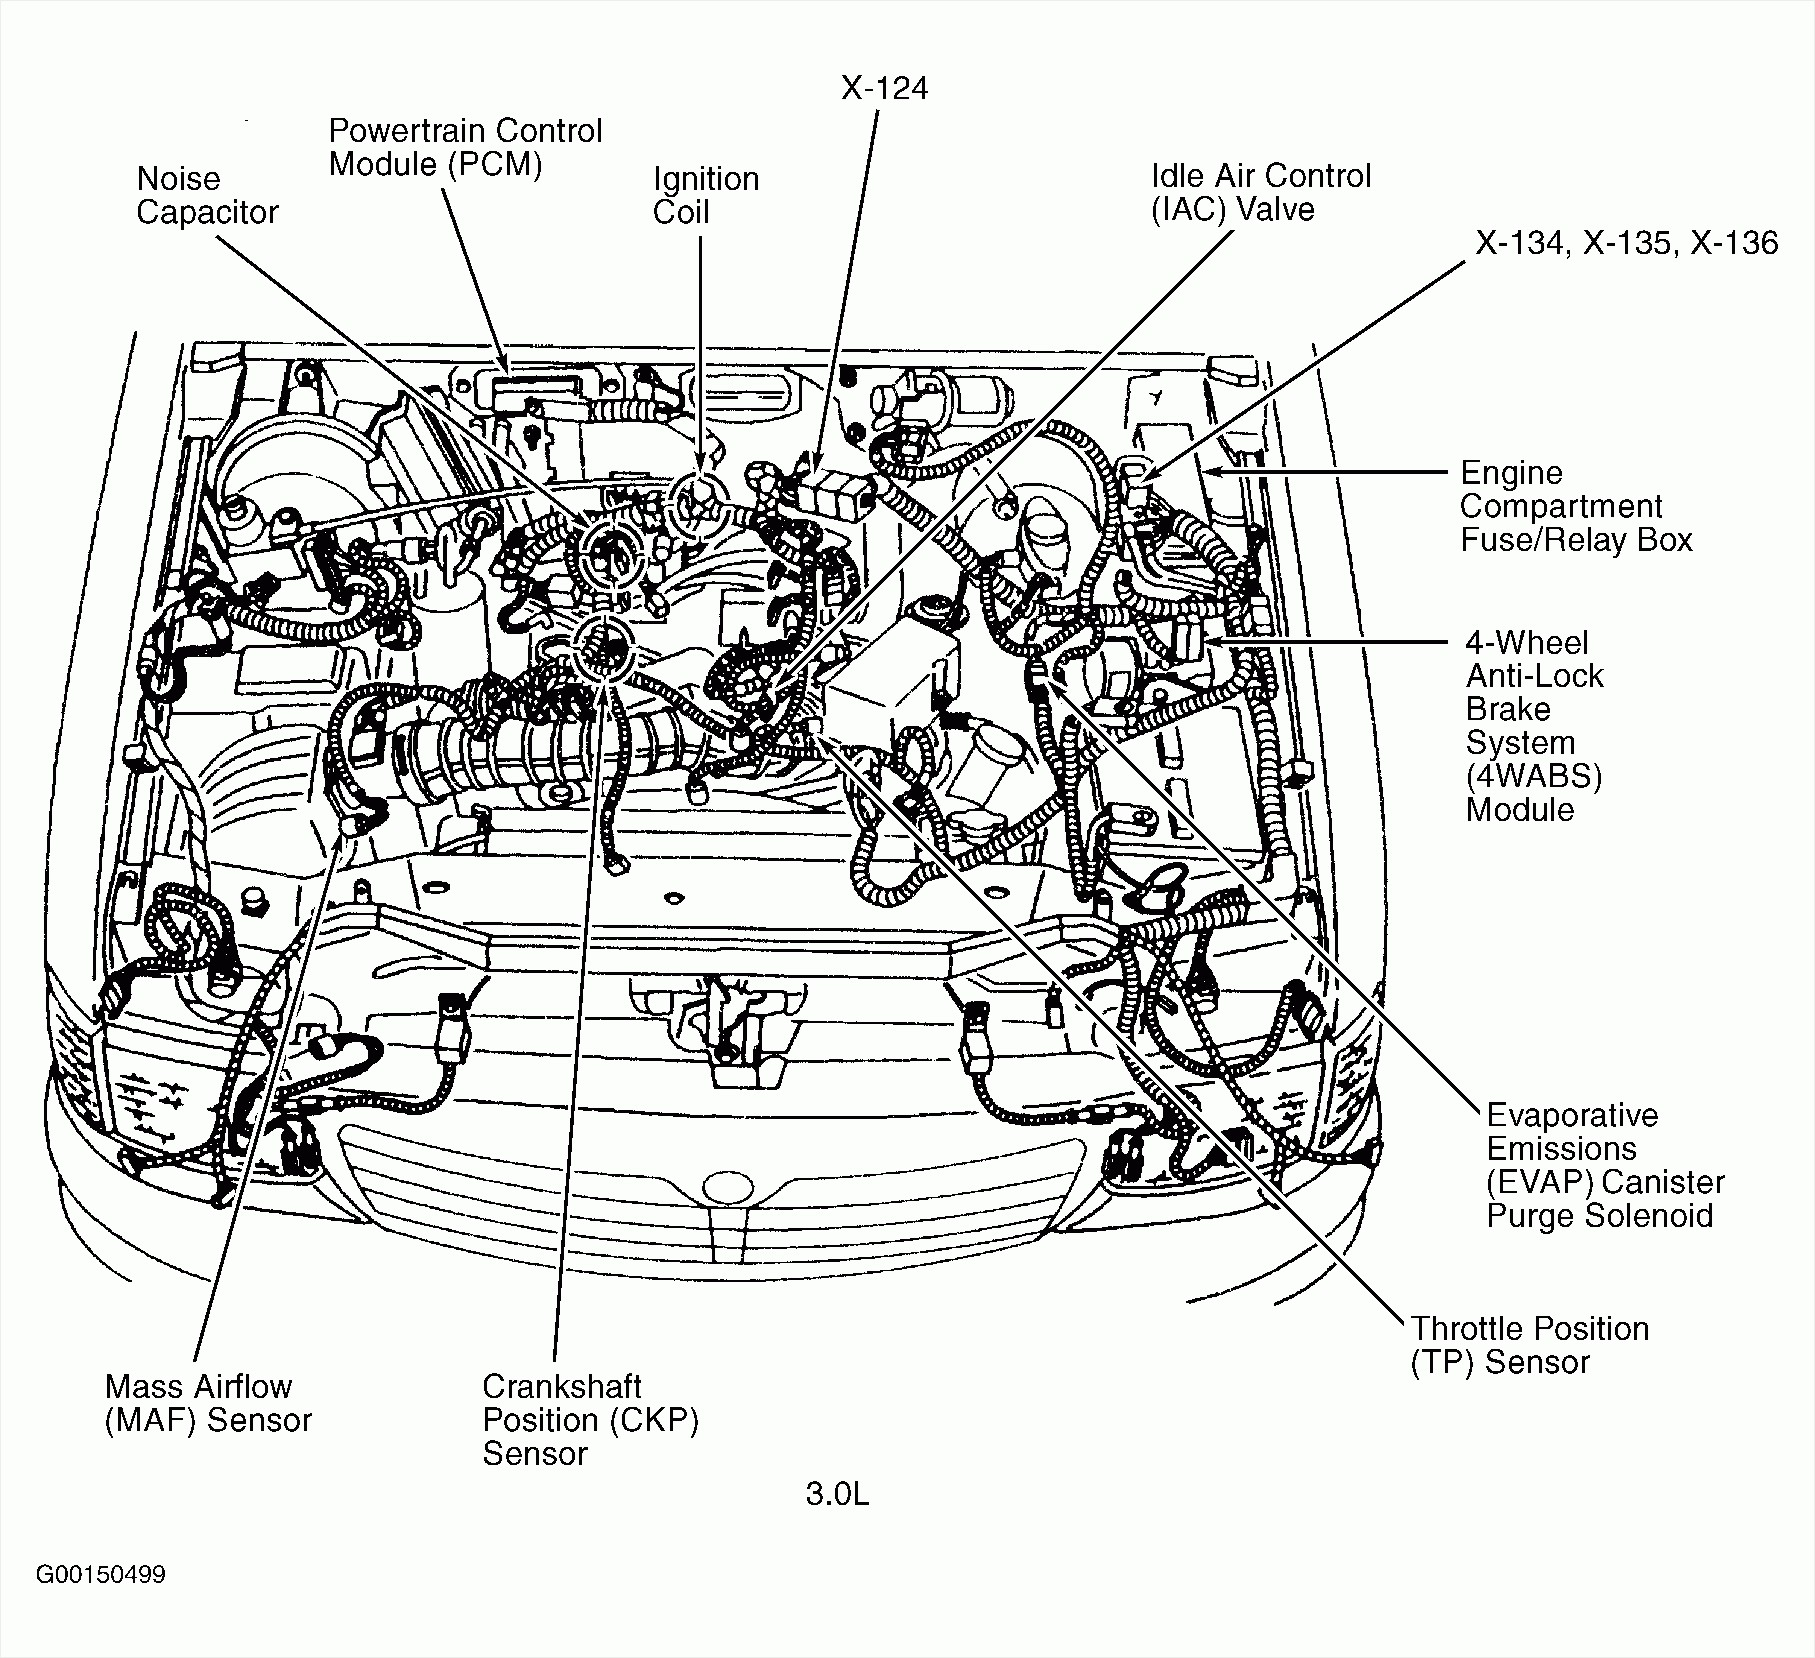 hight resolution of 2004 mazda 3 parts diagram wiring diagram todays 1999 mazda 626 engine diagram 2004 mazda 6